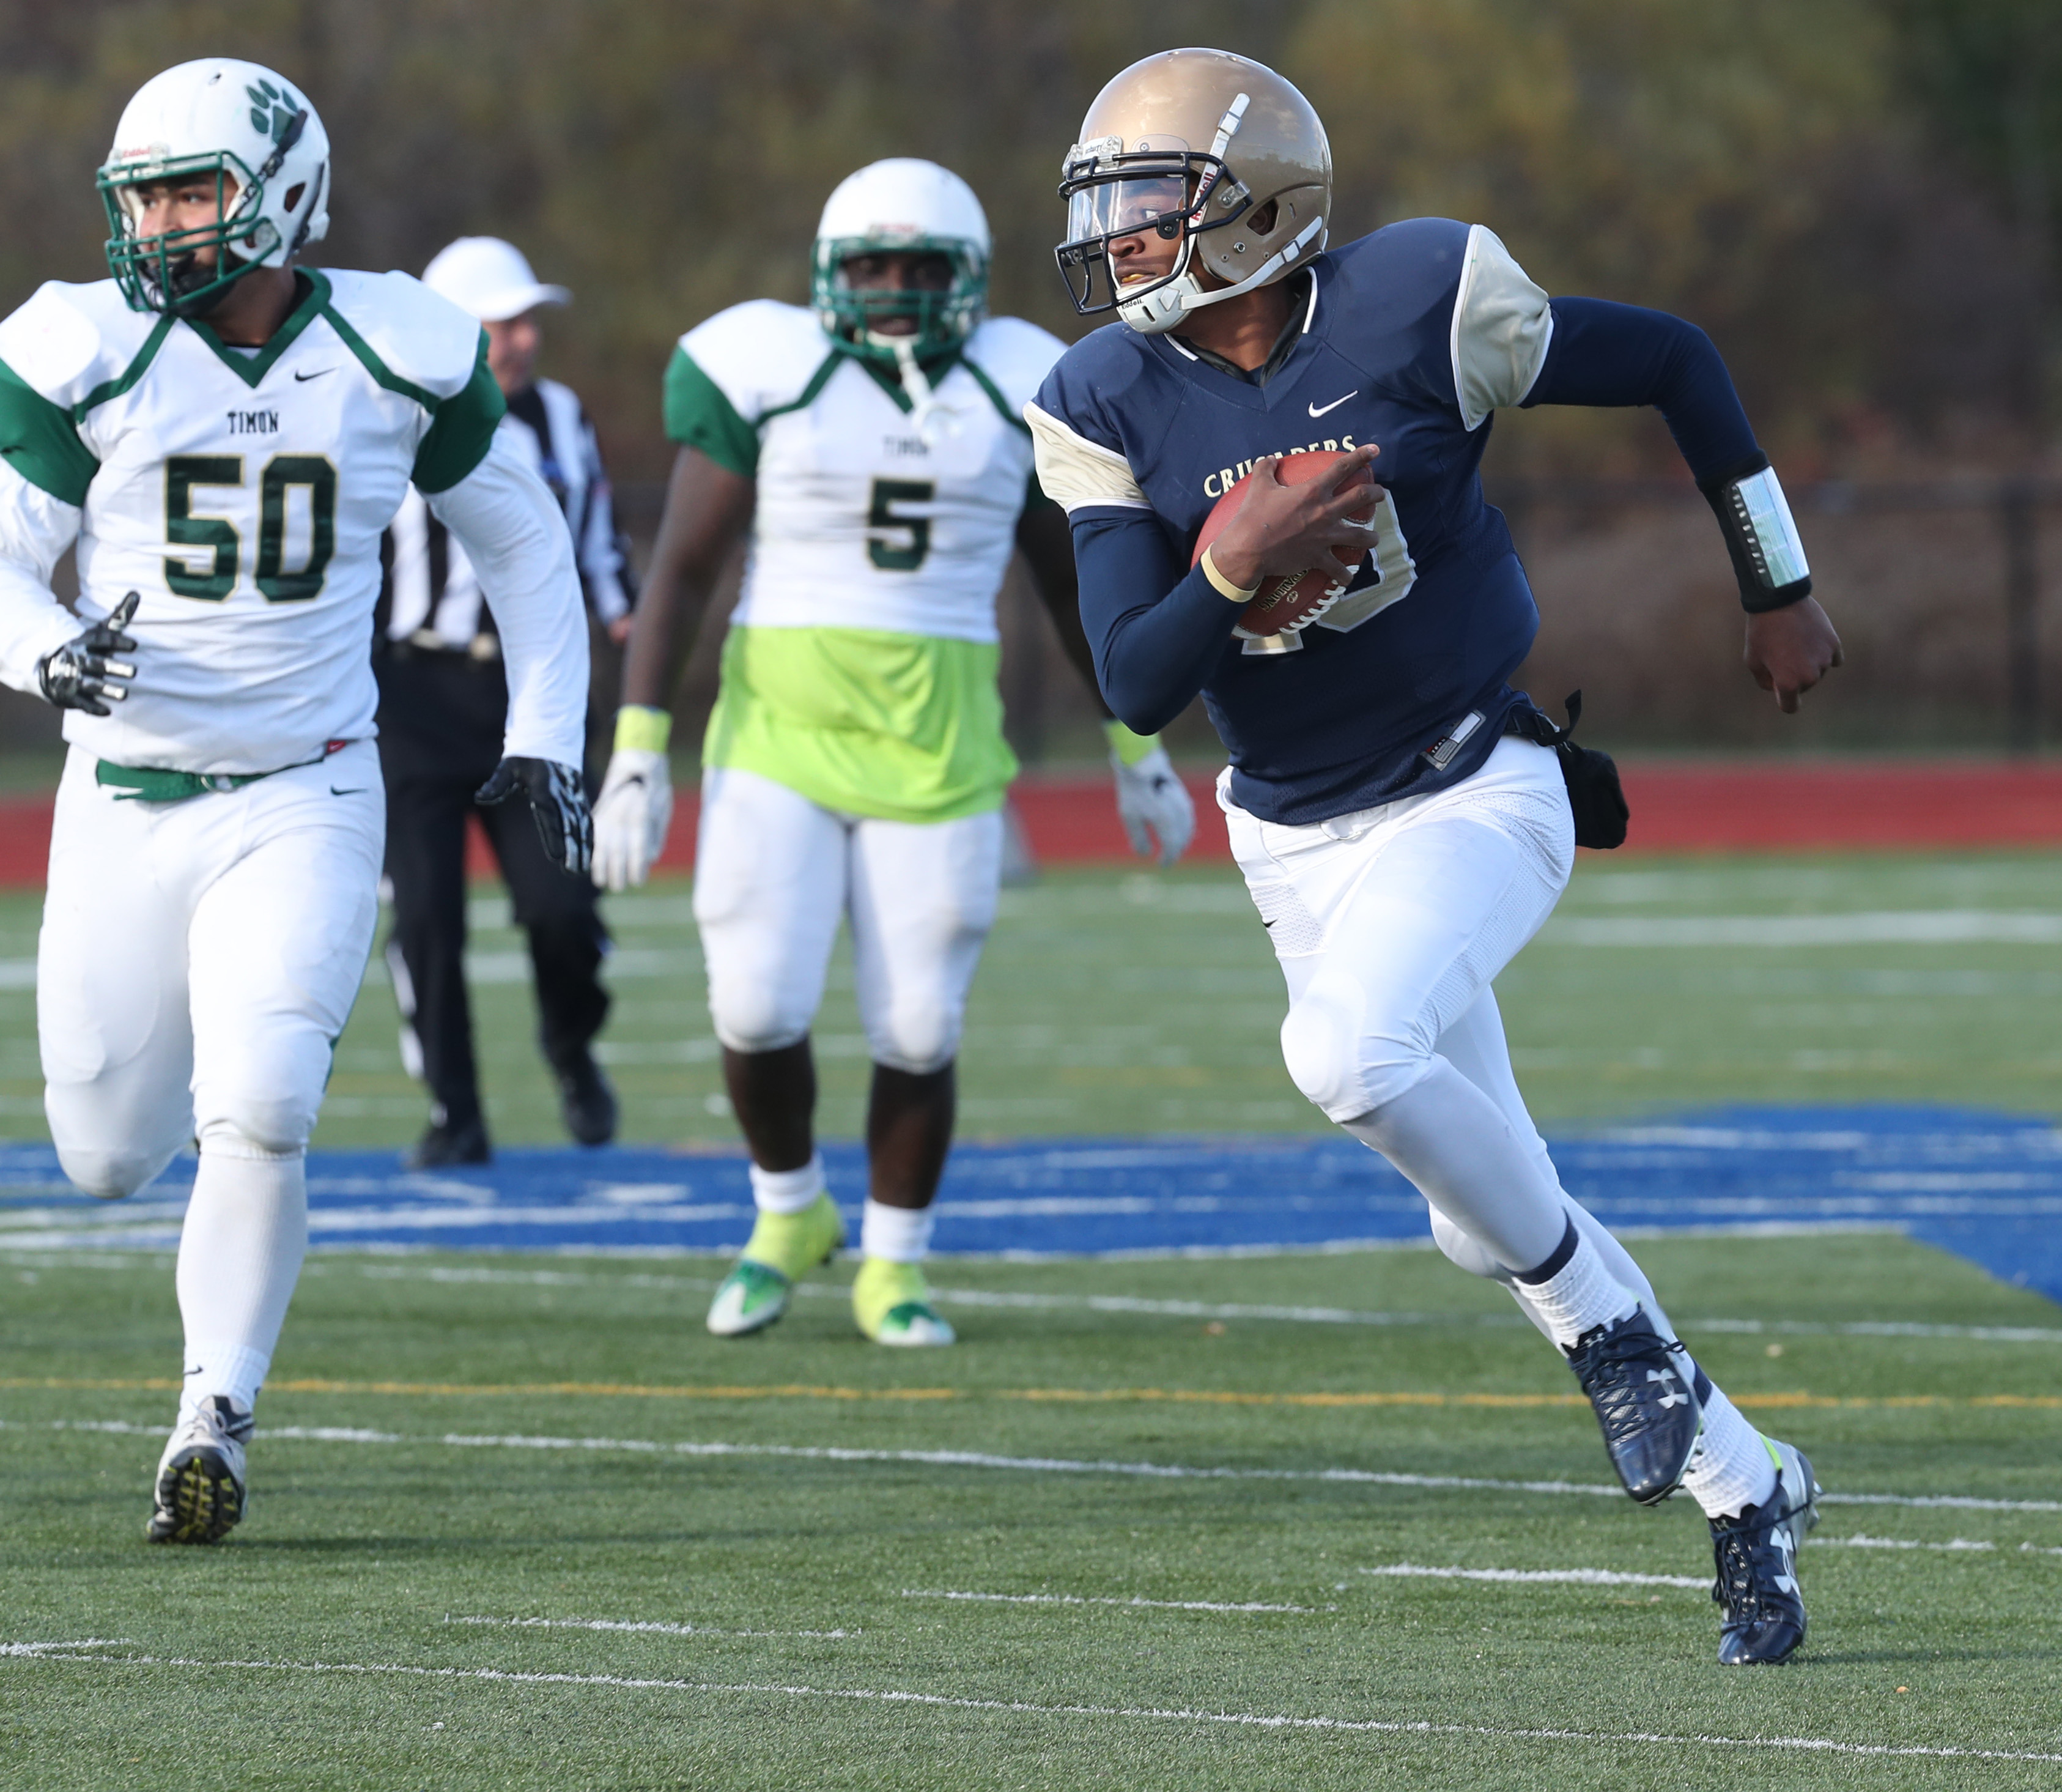 Canisius Jayce Johnson beats Timon's Joe Harrison for a touchdown in the third quarter.  (James P. McCoy/Buffalo News)